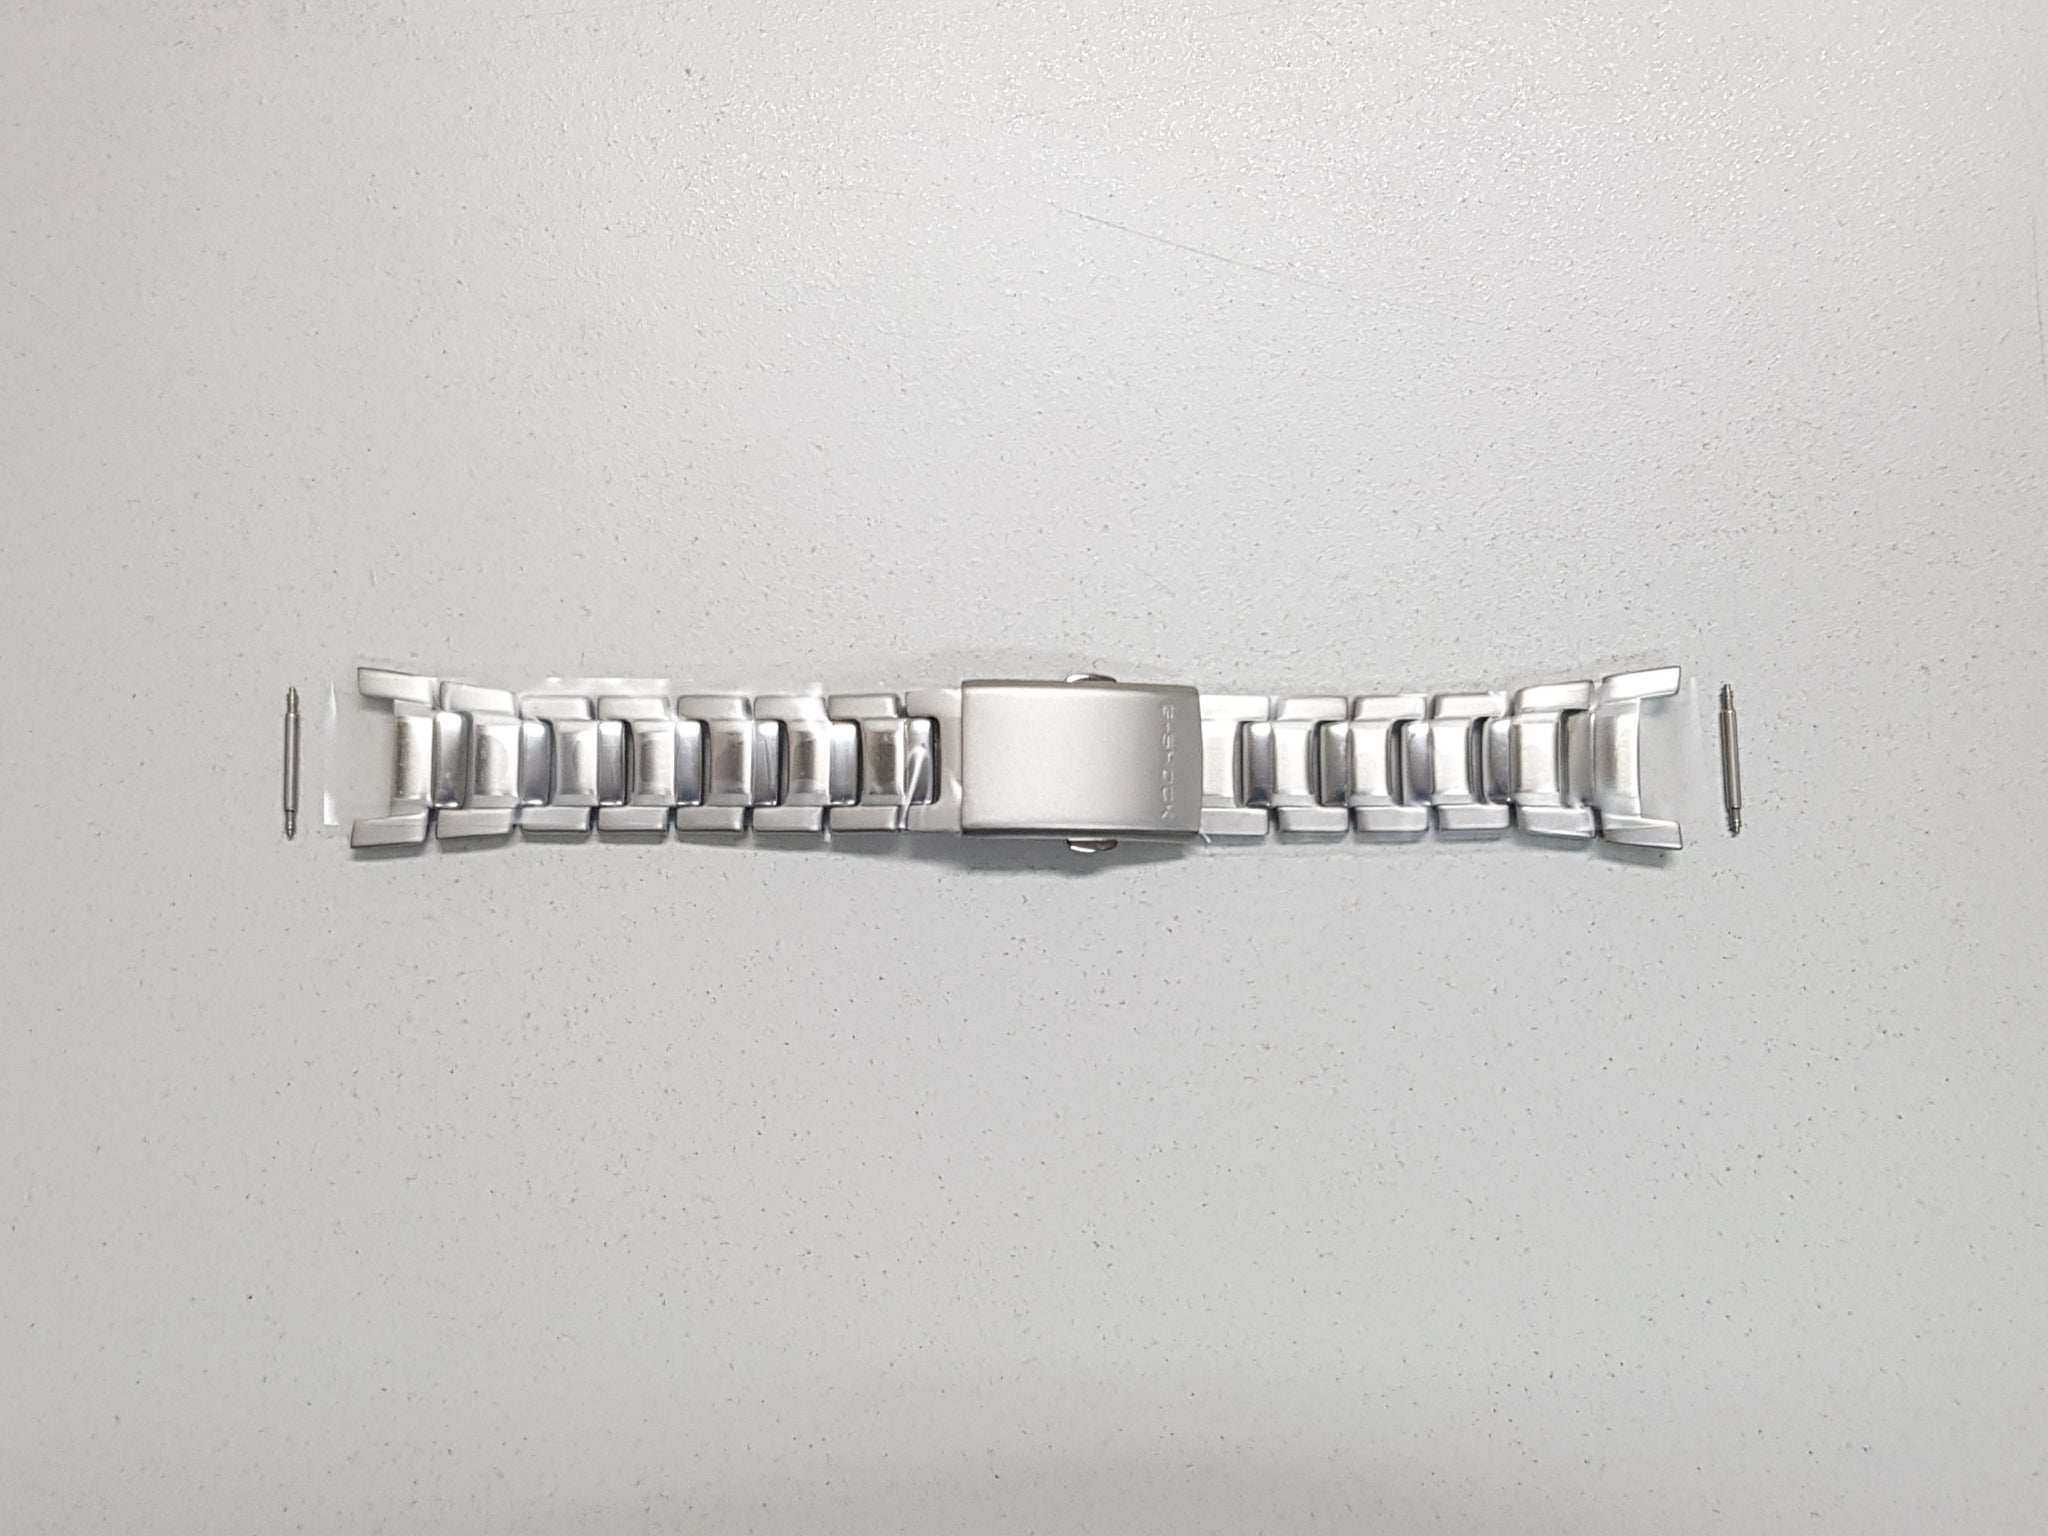 SILVER STAINLESS STEEL BAND (10109619) - G-SHOCK